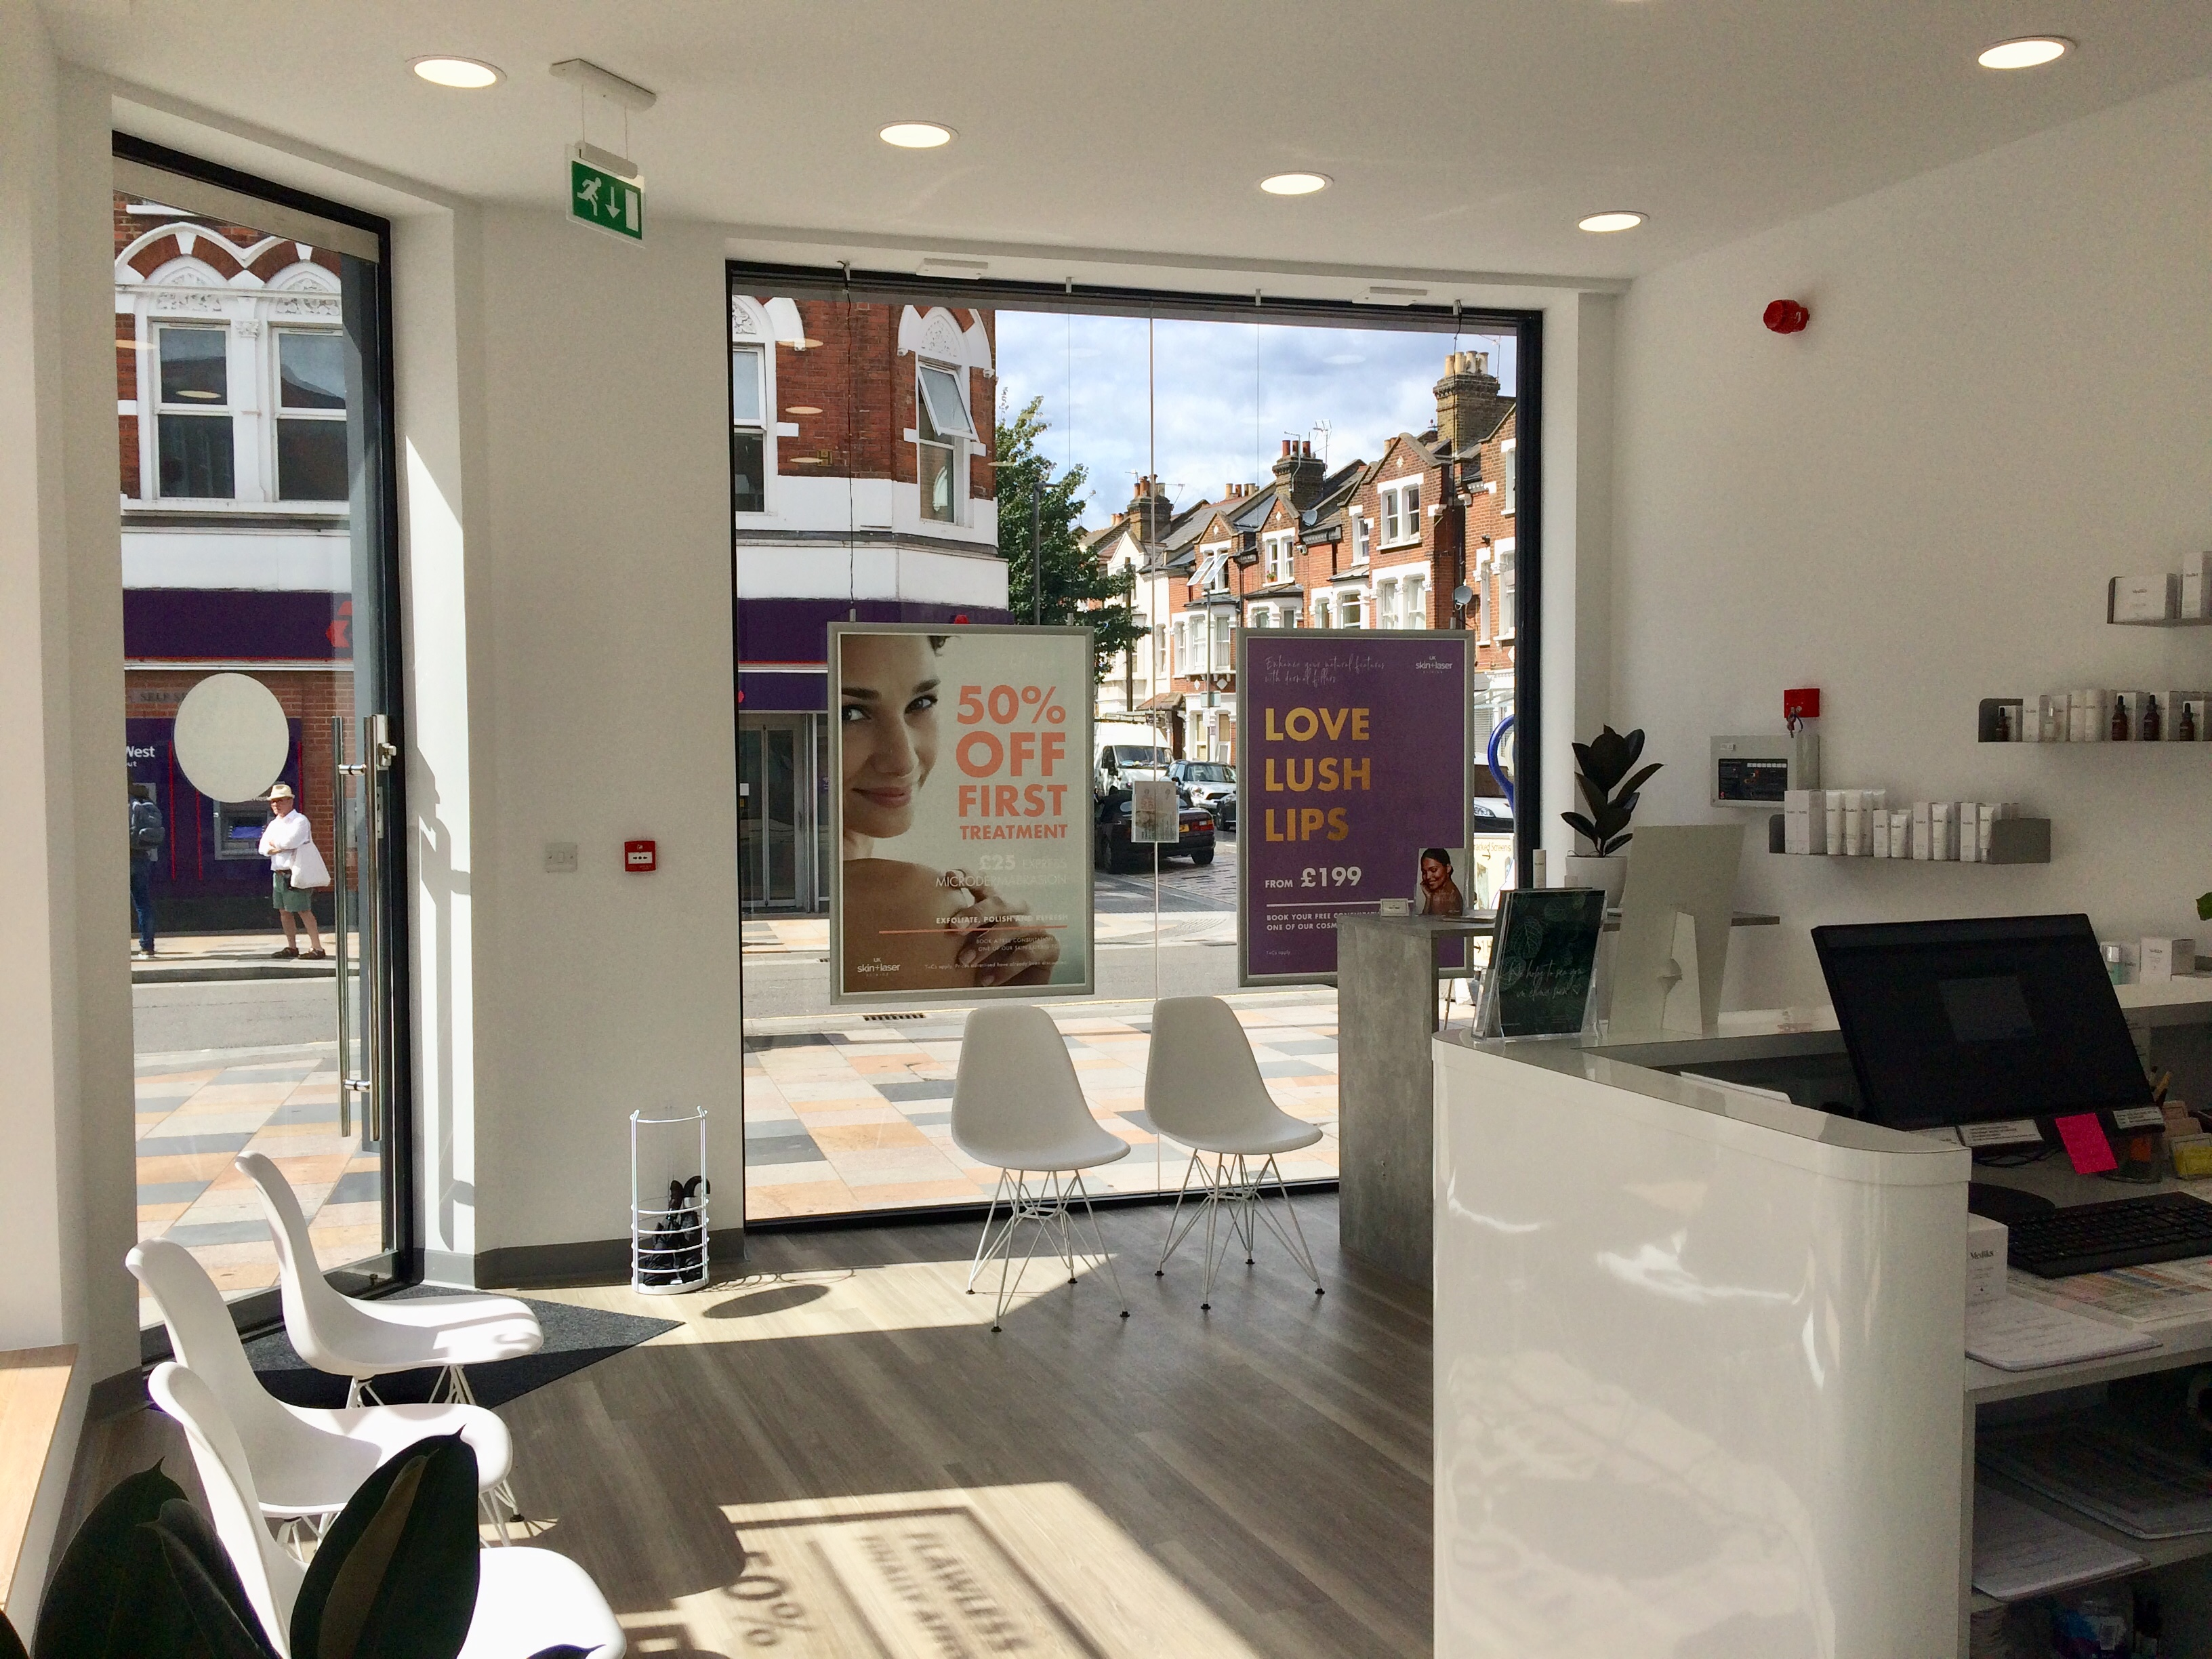 Image of the inside reception area looking out onto the street of UK Skin and Laser clinic in Clapham